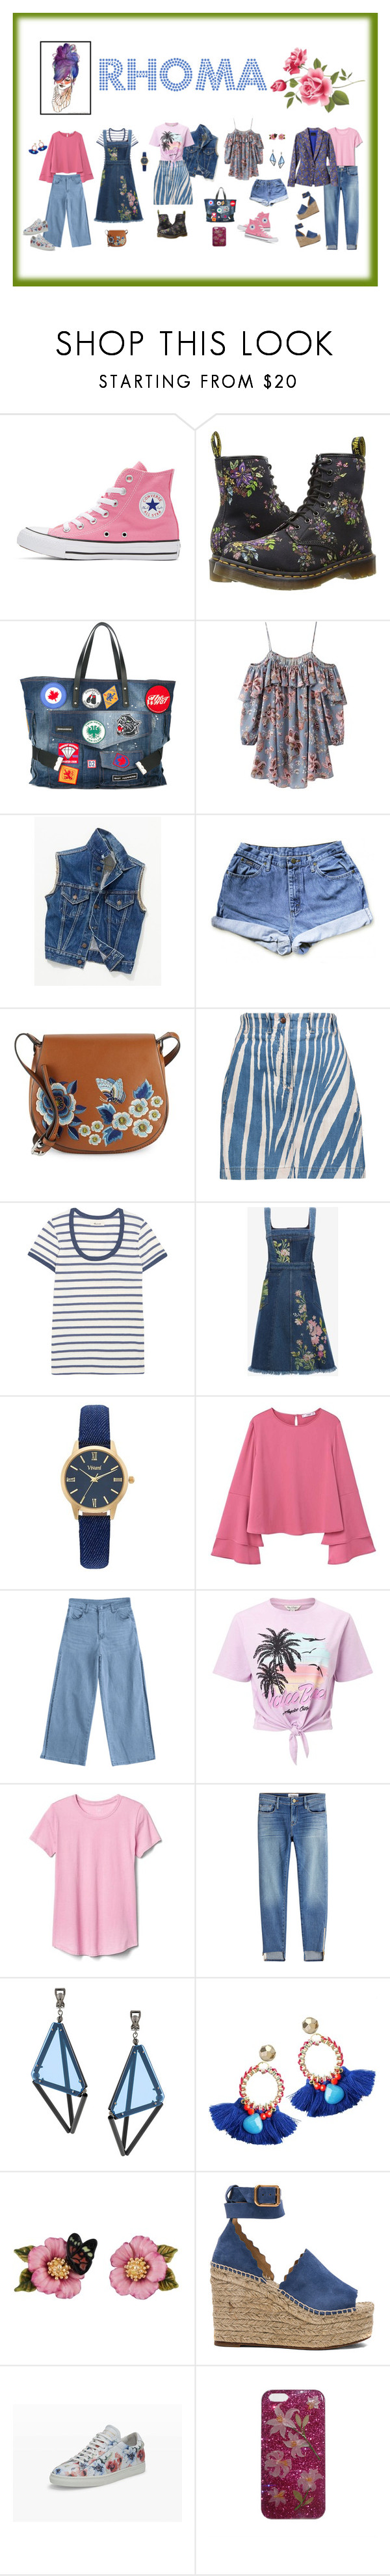 """Self-Portrait - Rhoma"" by elizabeth-pride ❤ liked on Polyvore featuring Converse, Dr. Martens, Pippa, Dsquared2, Free People, French Connection, Roberto Cavalli, Madewell, Alexander McQueen and Vivani"